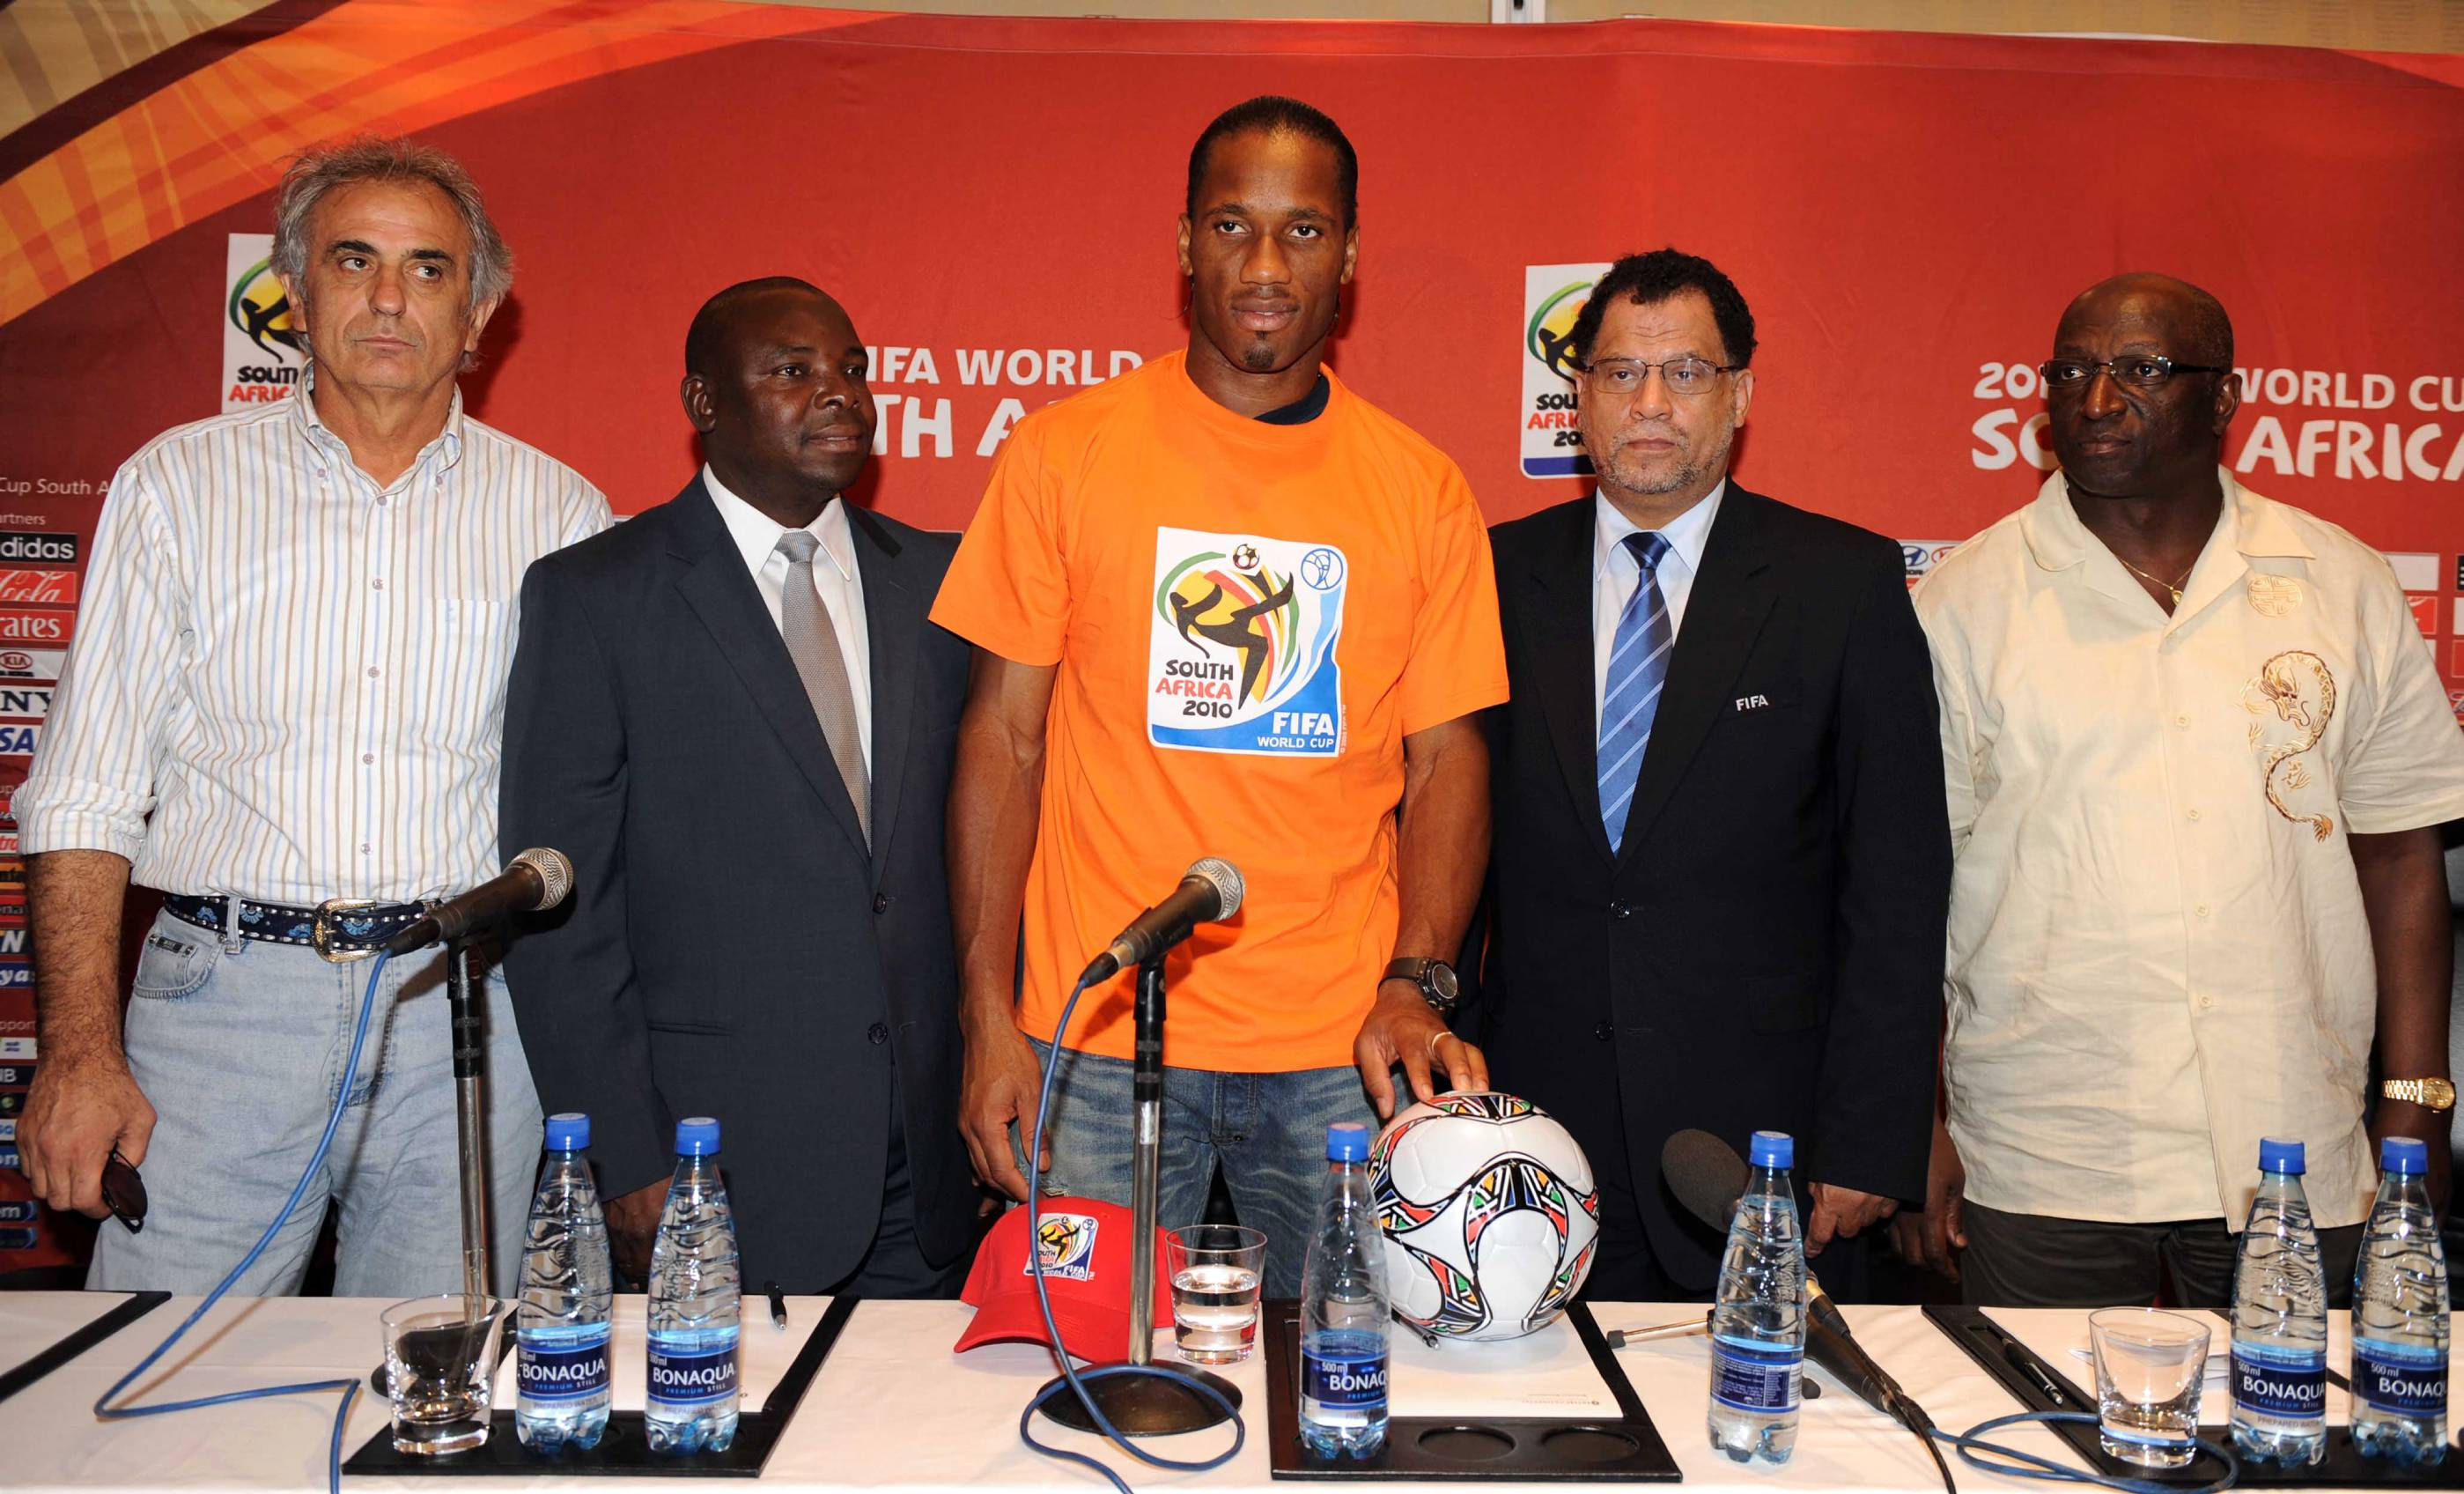 JOHANNESBURG, SOUTH AFRICA - OCTOBER 11:   (L-R) Coach Vahid Halilhodzic,  Safa president Kirsten Nematandani, captain Didier Drogba, 2010 LOC CEO Danny Jordaan and FA president Jacques Anouma attend the Ivory Coast Press Conference from the Inter Contine